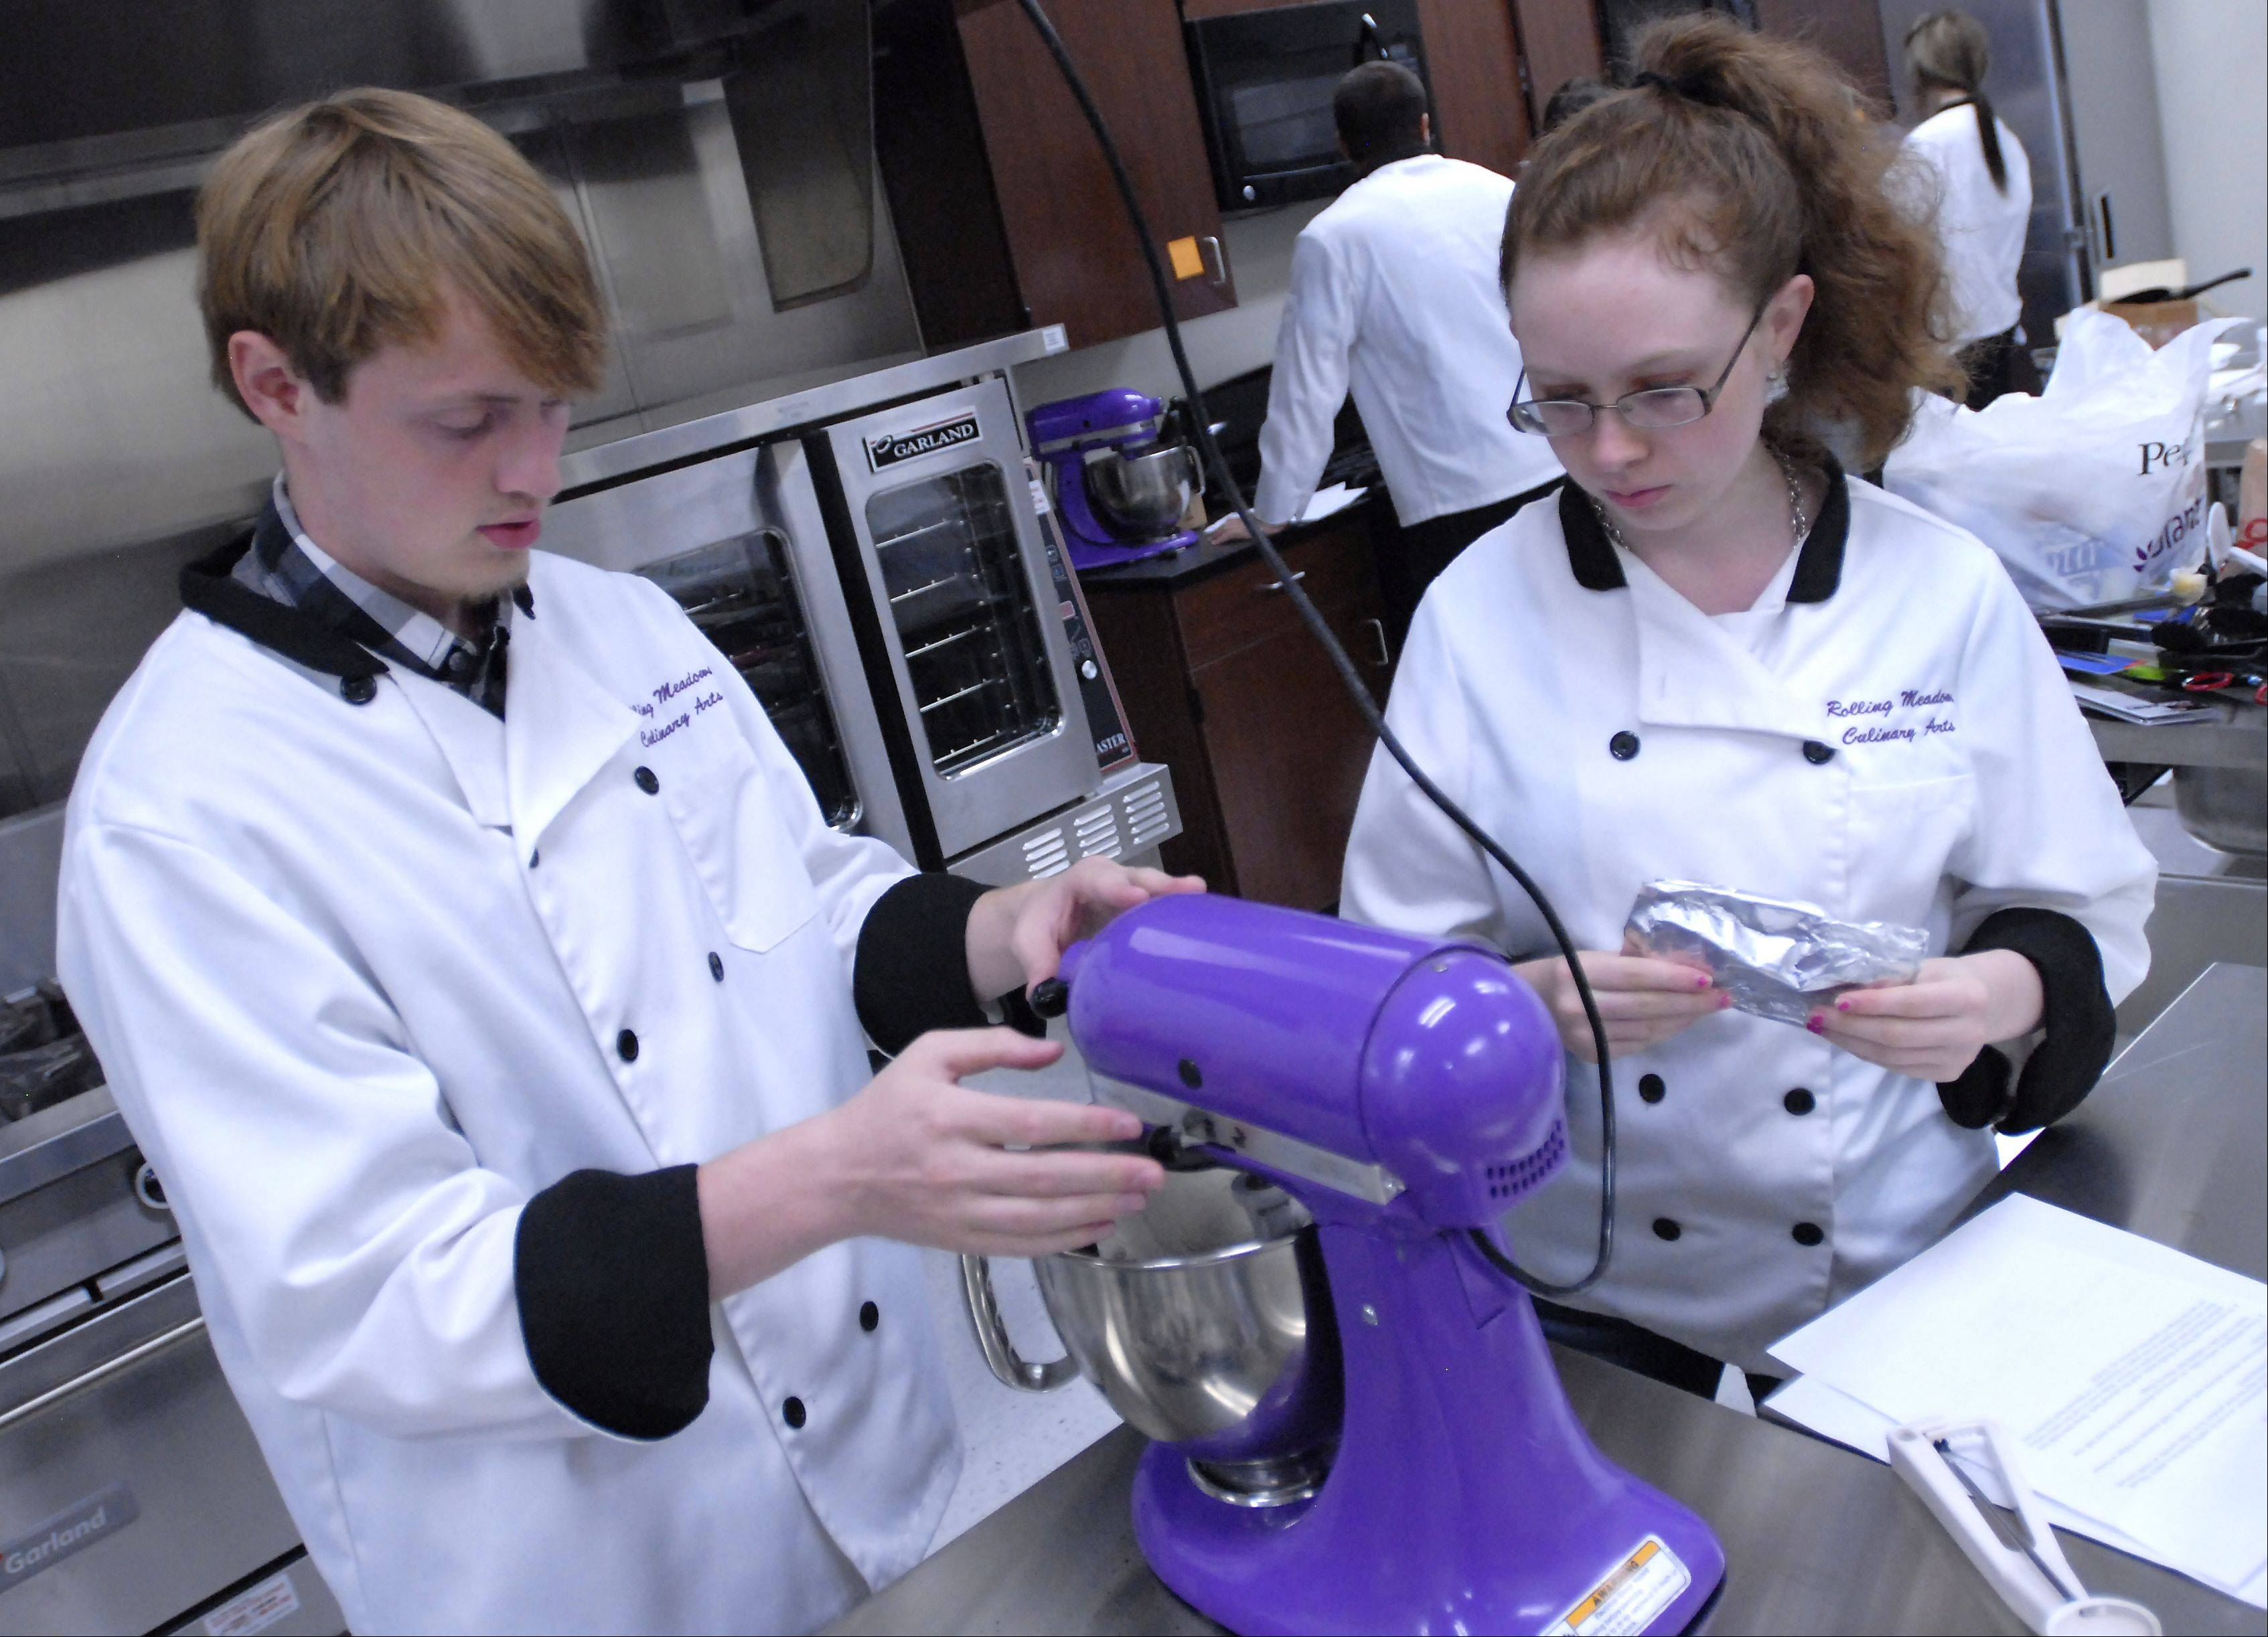 Jared Manwell, a senior at Elk Grove High School, and Haley Junius, a senior at Prospect High School, are both Culinary Arts 2 students. They are preparing Oreo truffles in the new professional kitchen for students at Rolling Meadows High School.